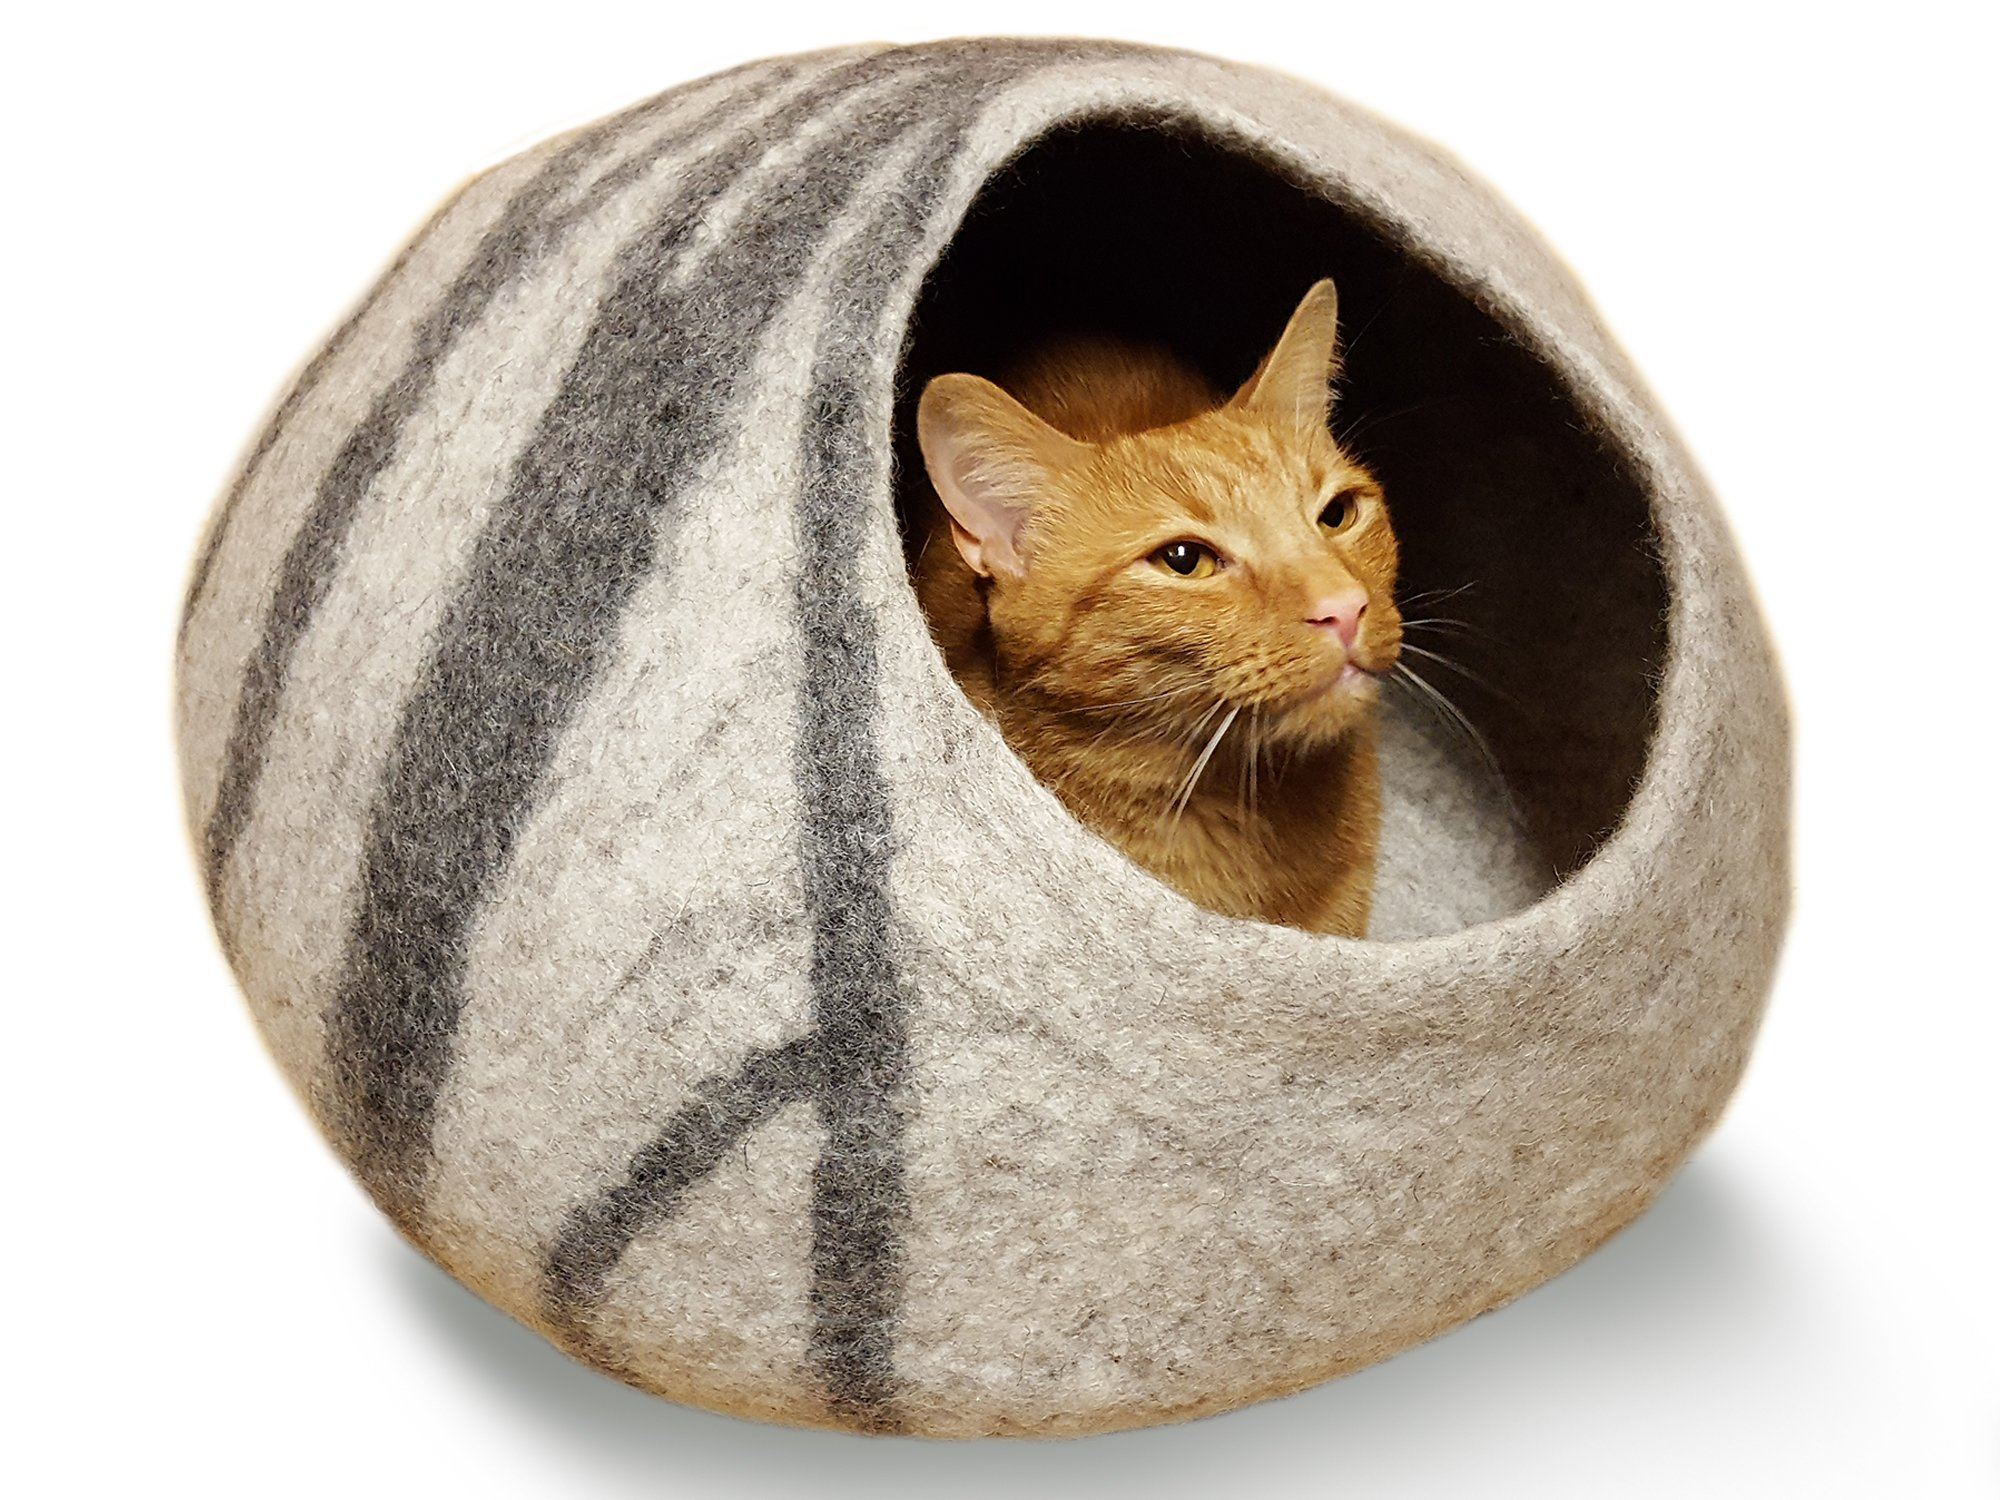 MEOWFIA Premium Felt Cat Cave Bed (Large) - Eco Friendly 100% Merino Wool Bed for Large Cats and Kittens(Light Grey) by MEOWFIA